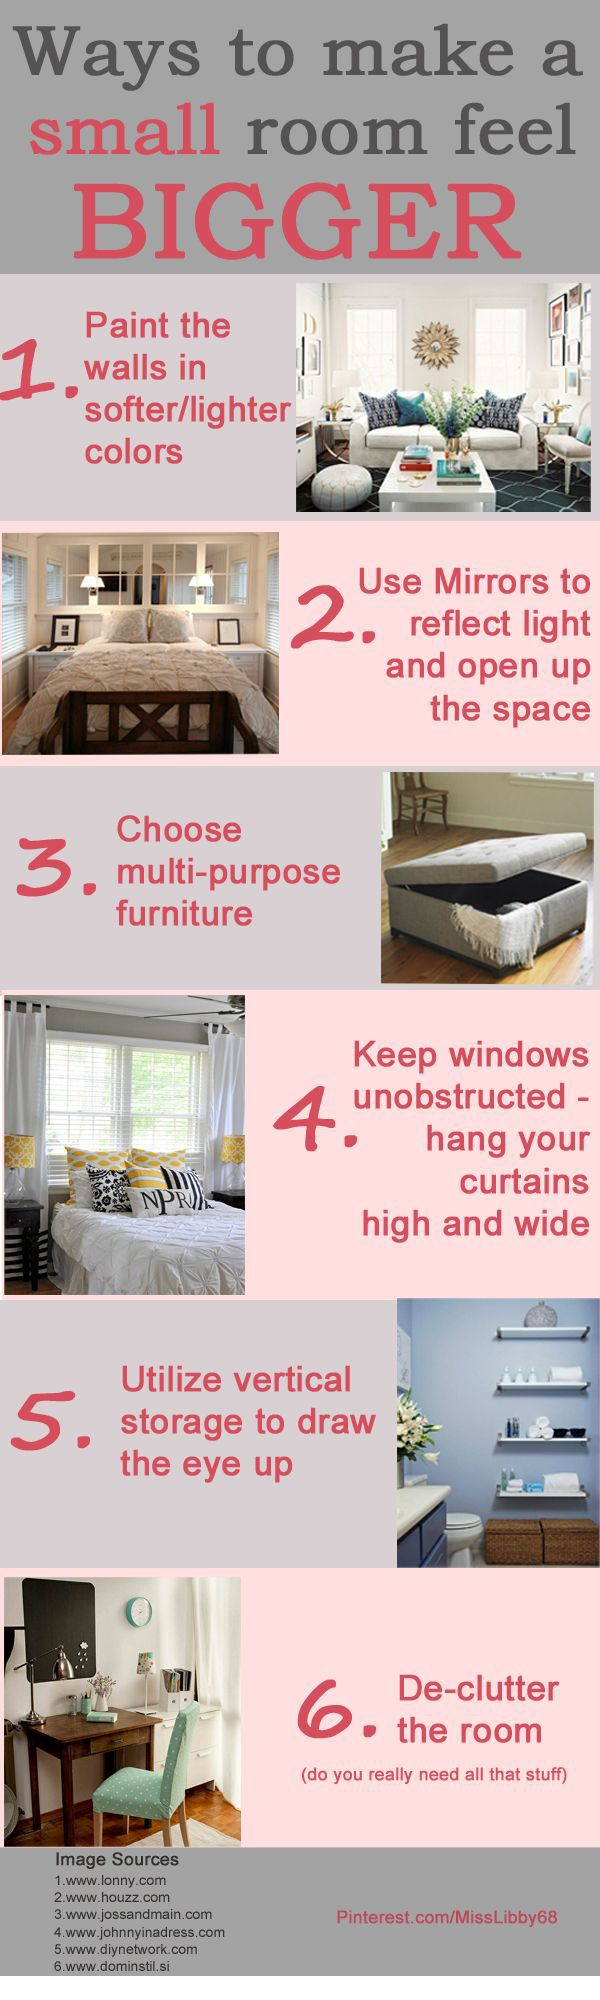 20 Bedroom Organization Tips To Make The Most Of A Small Space Organization Hacks Bedroom Small Rooms Small Spaces